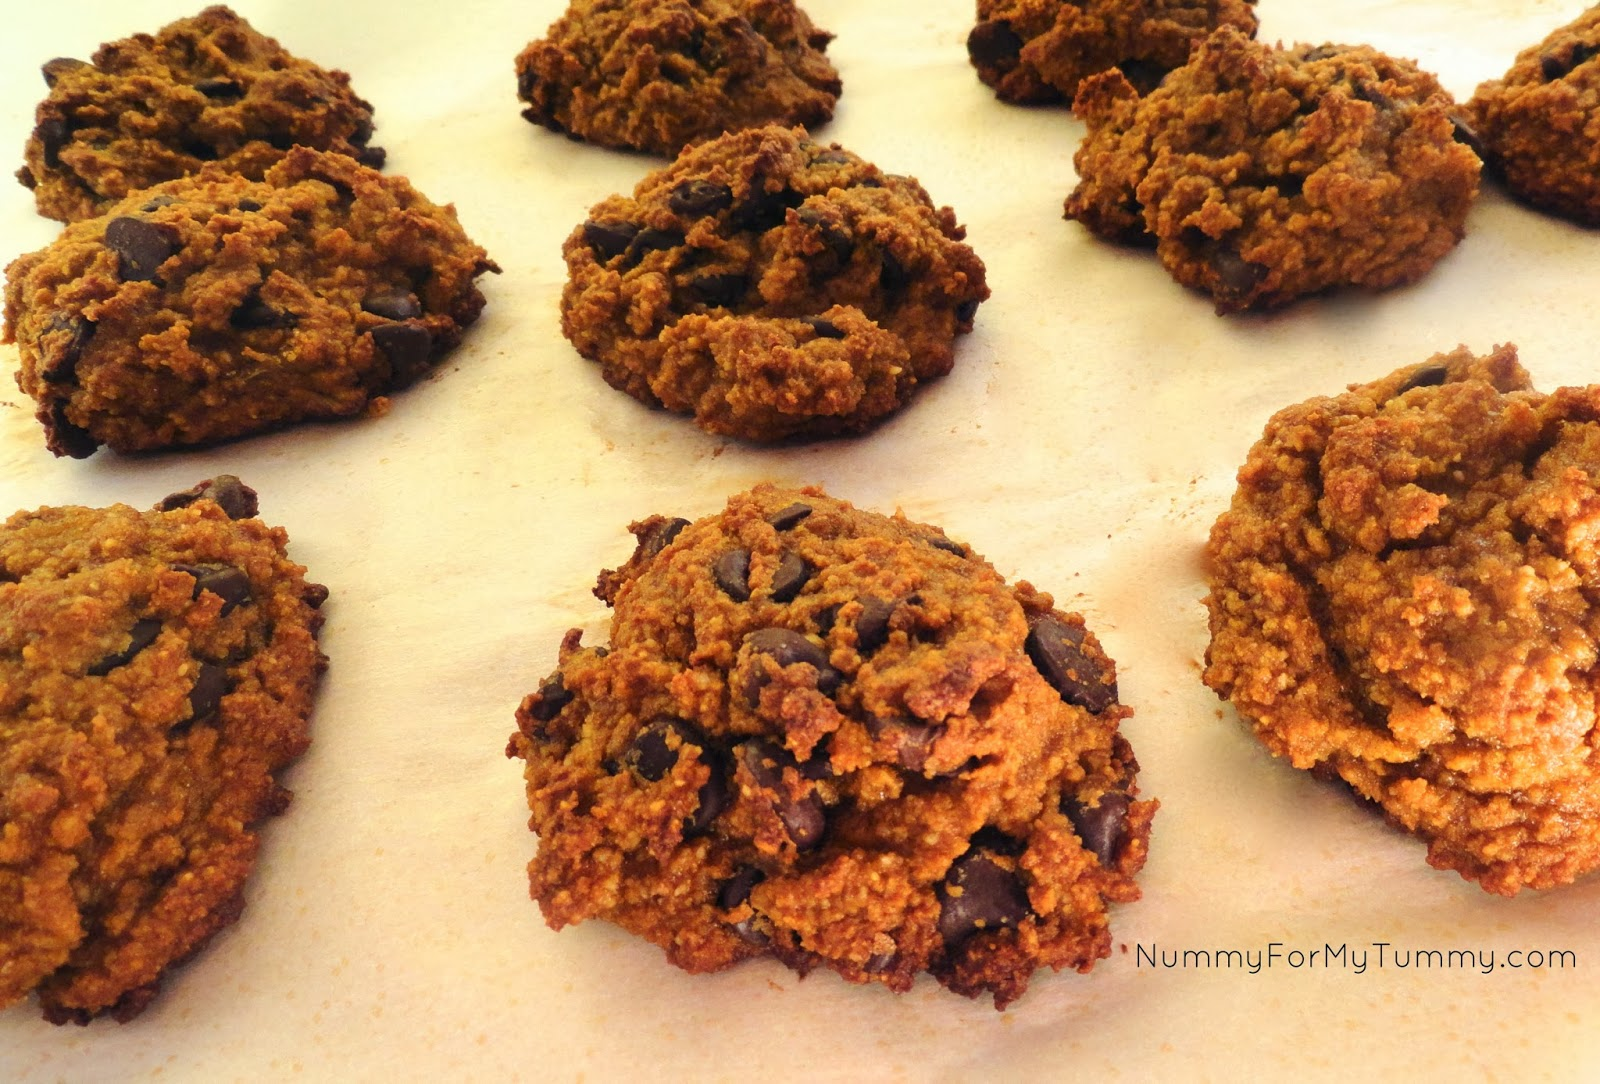 Gluten-Free Banana & Chocolate Chip Cookies